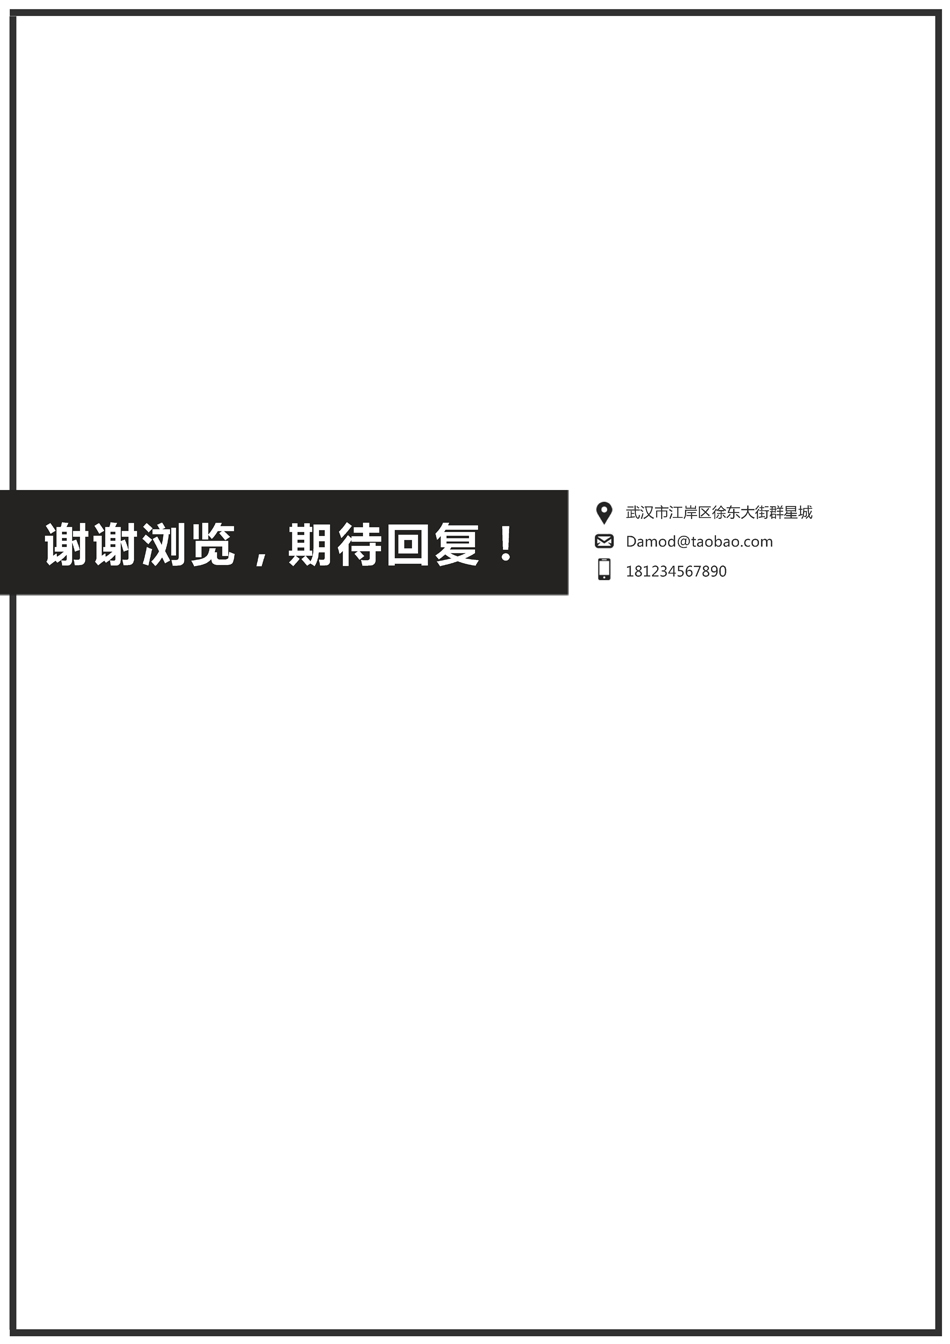 Four Page Word Format Minimalist Black And White Border